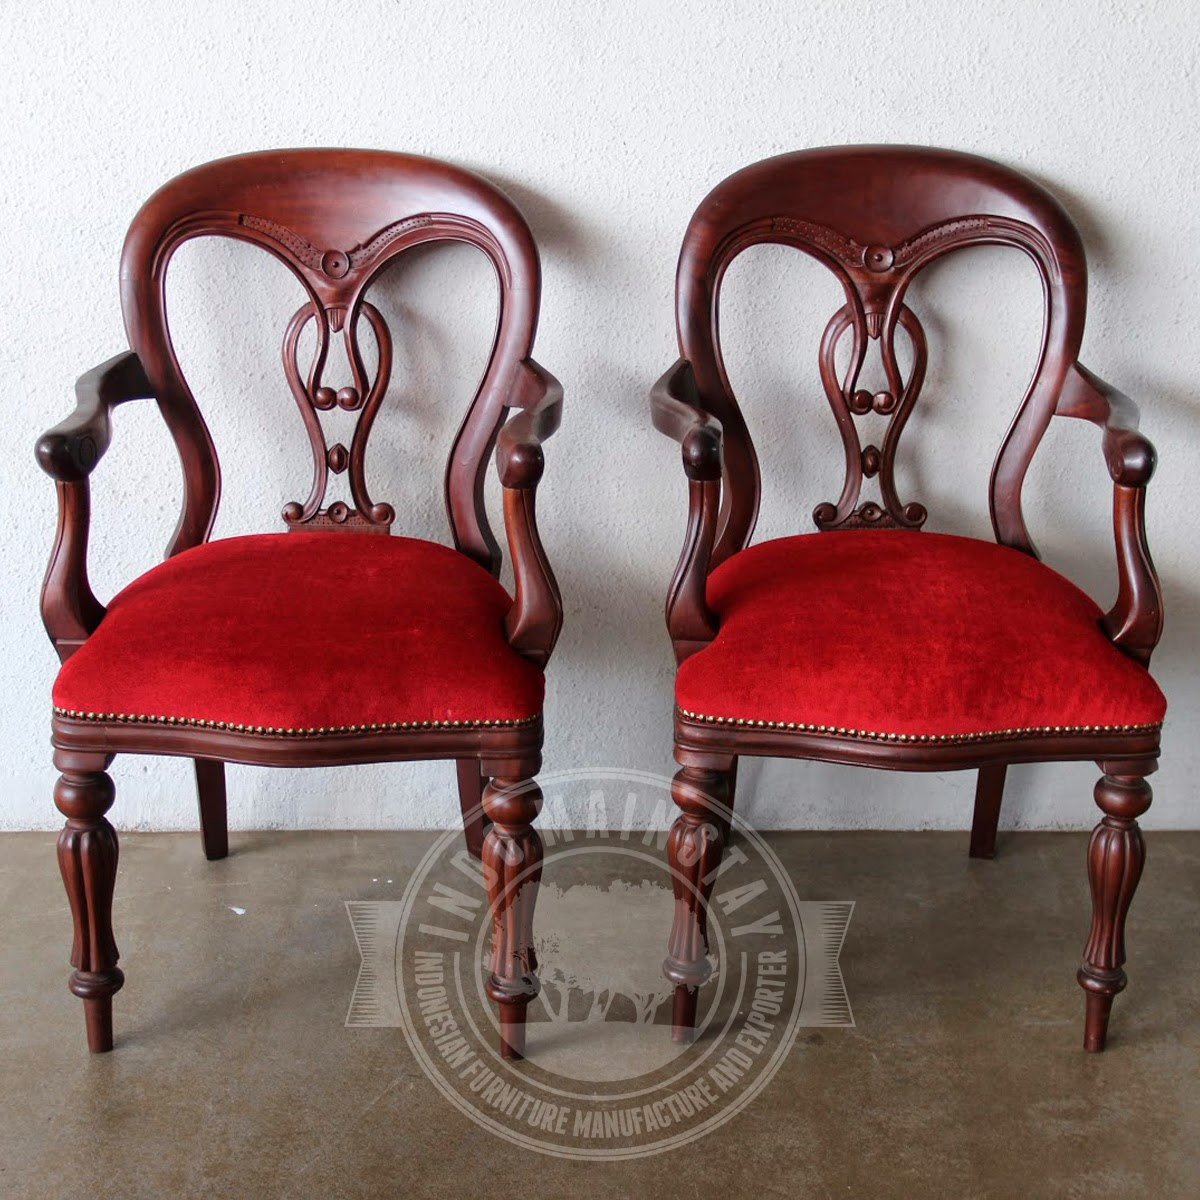 Reproduction Antique Fiddle Back Mahogany Dining Chair With Arm